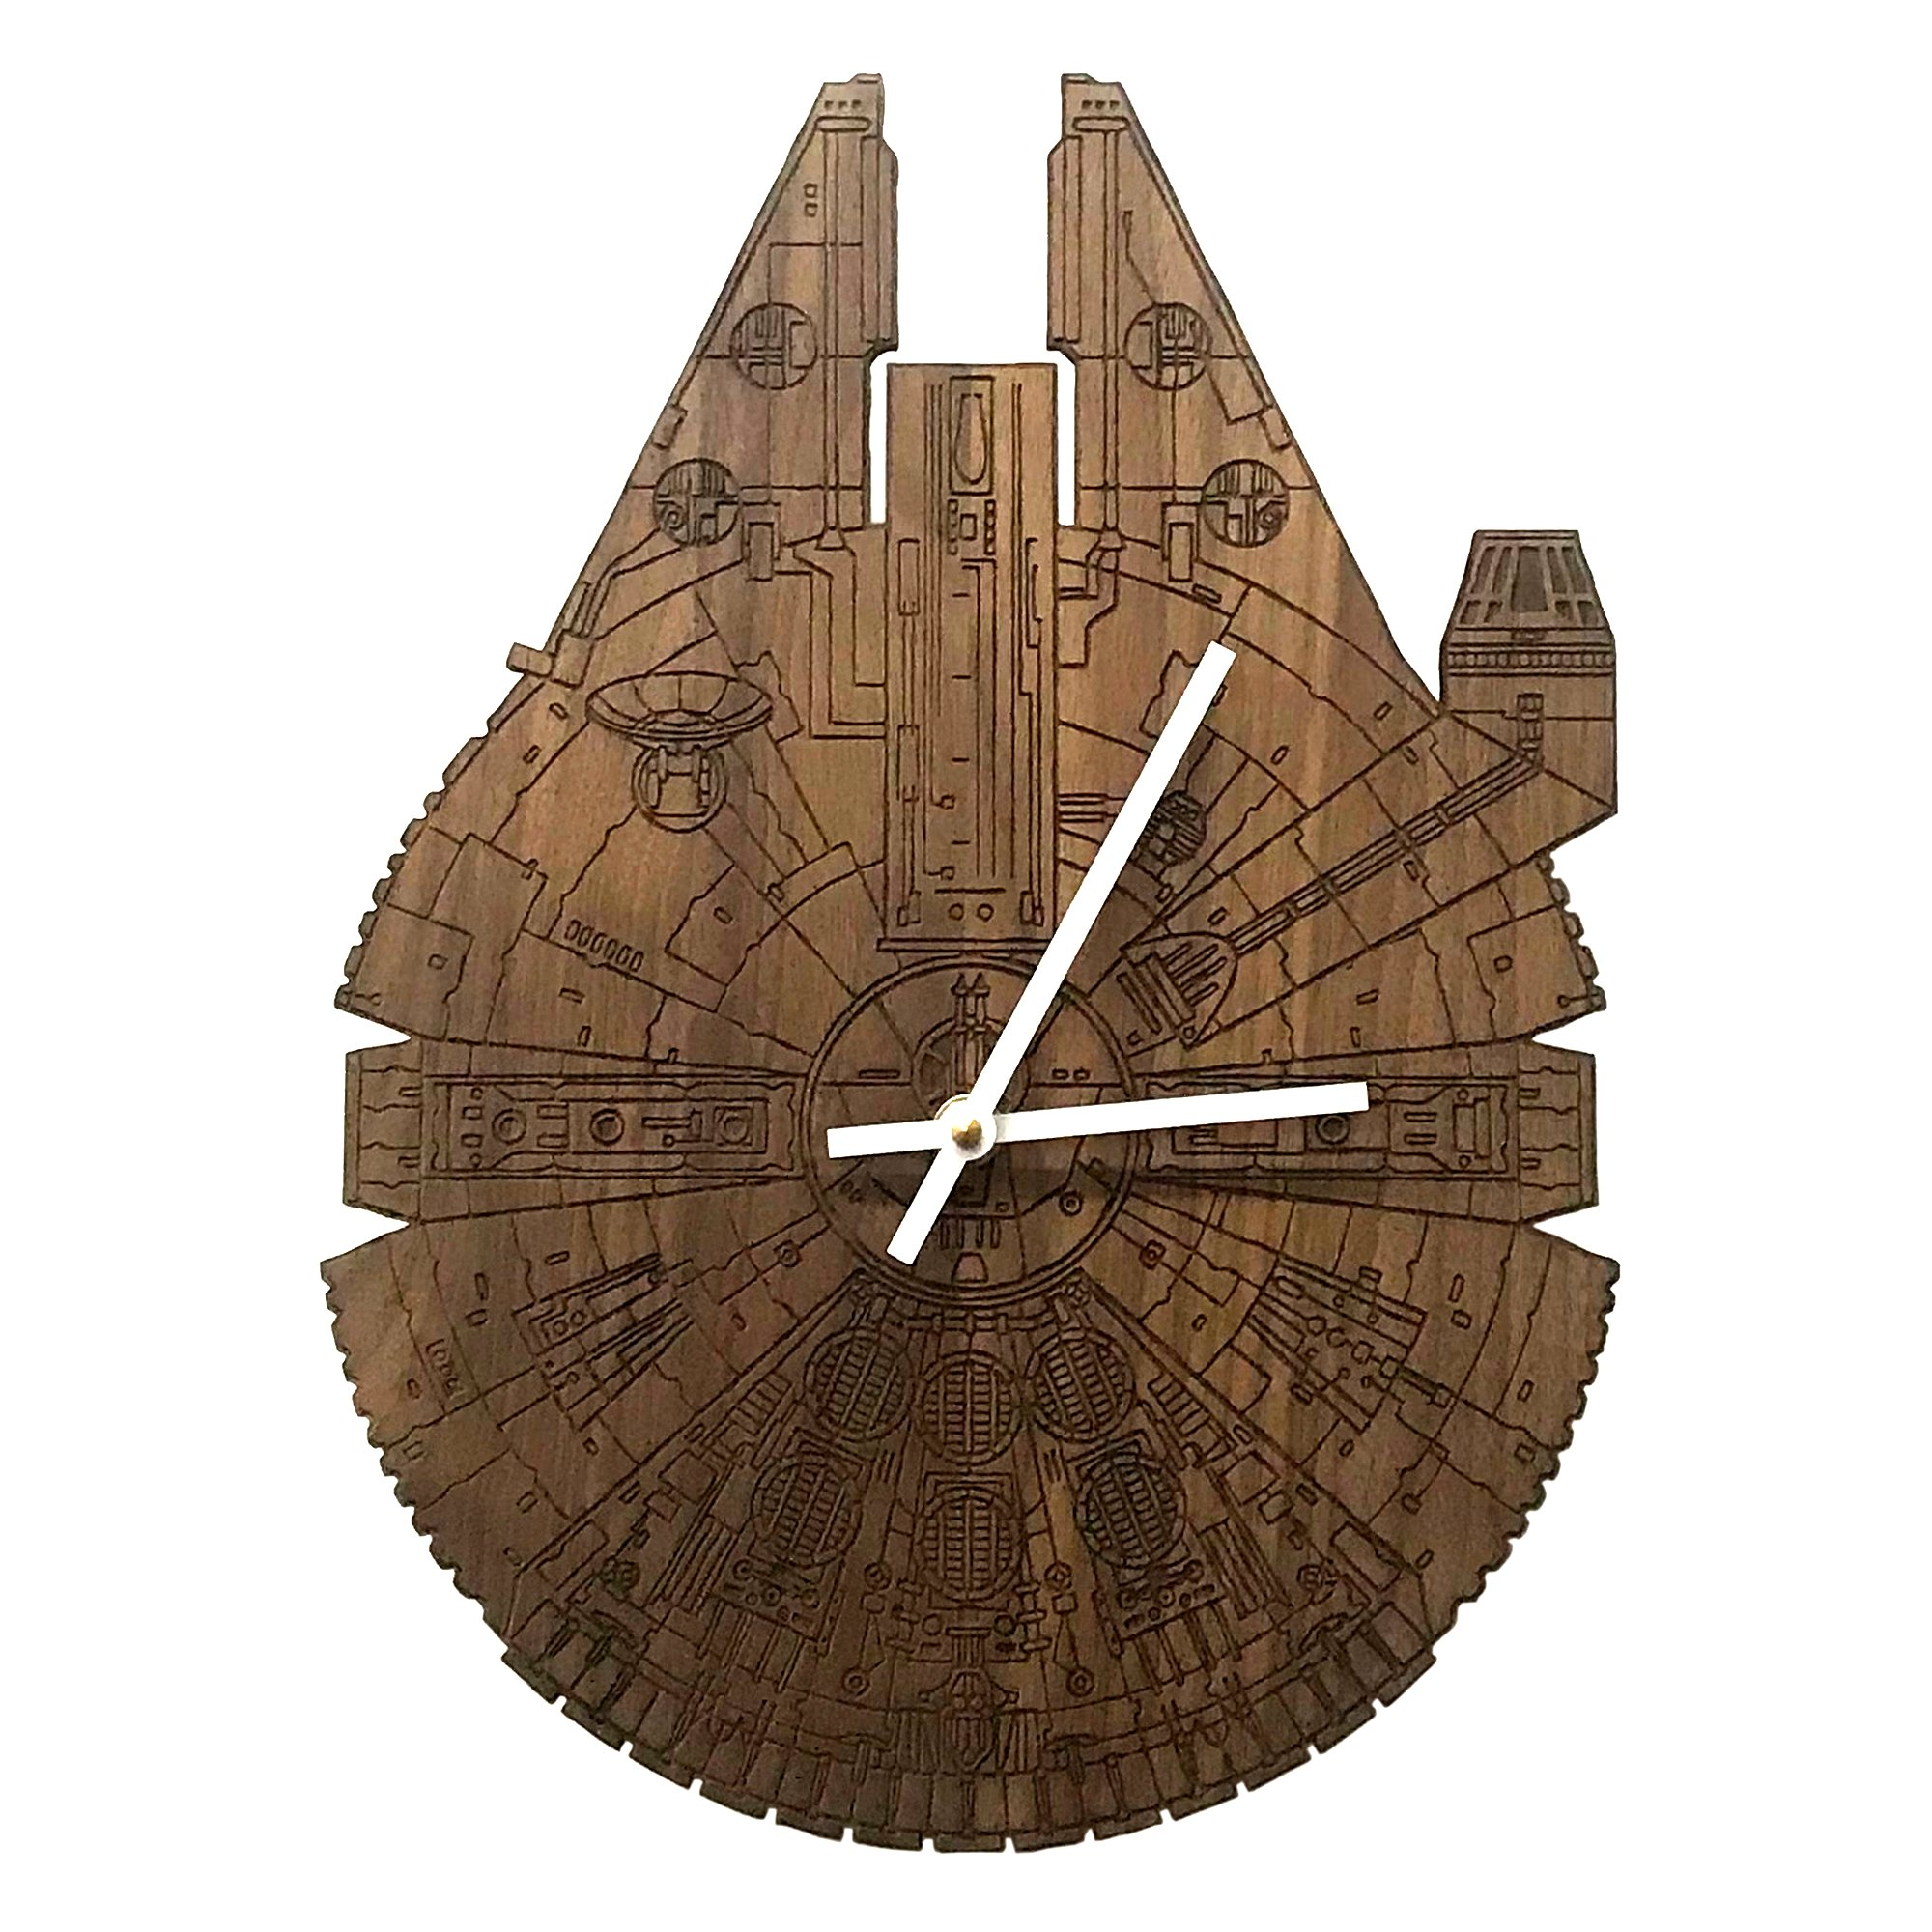 Star Wars Millennium Falcon Laser Engraved Wall Clock by Inked and Screened (Walnut - Standard)